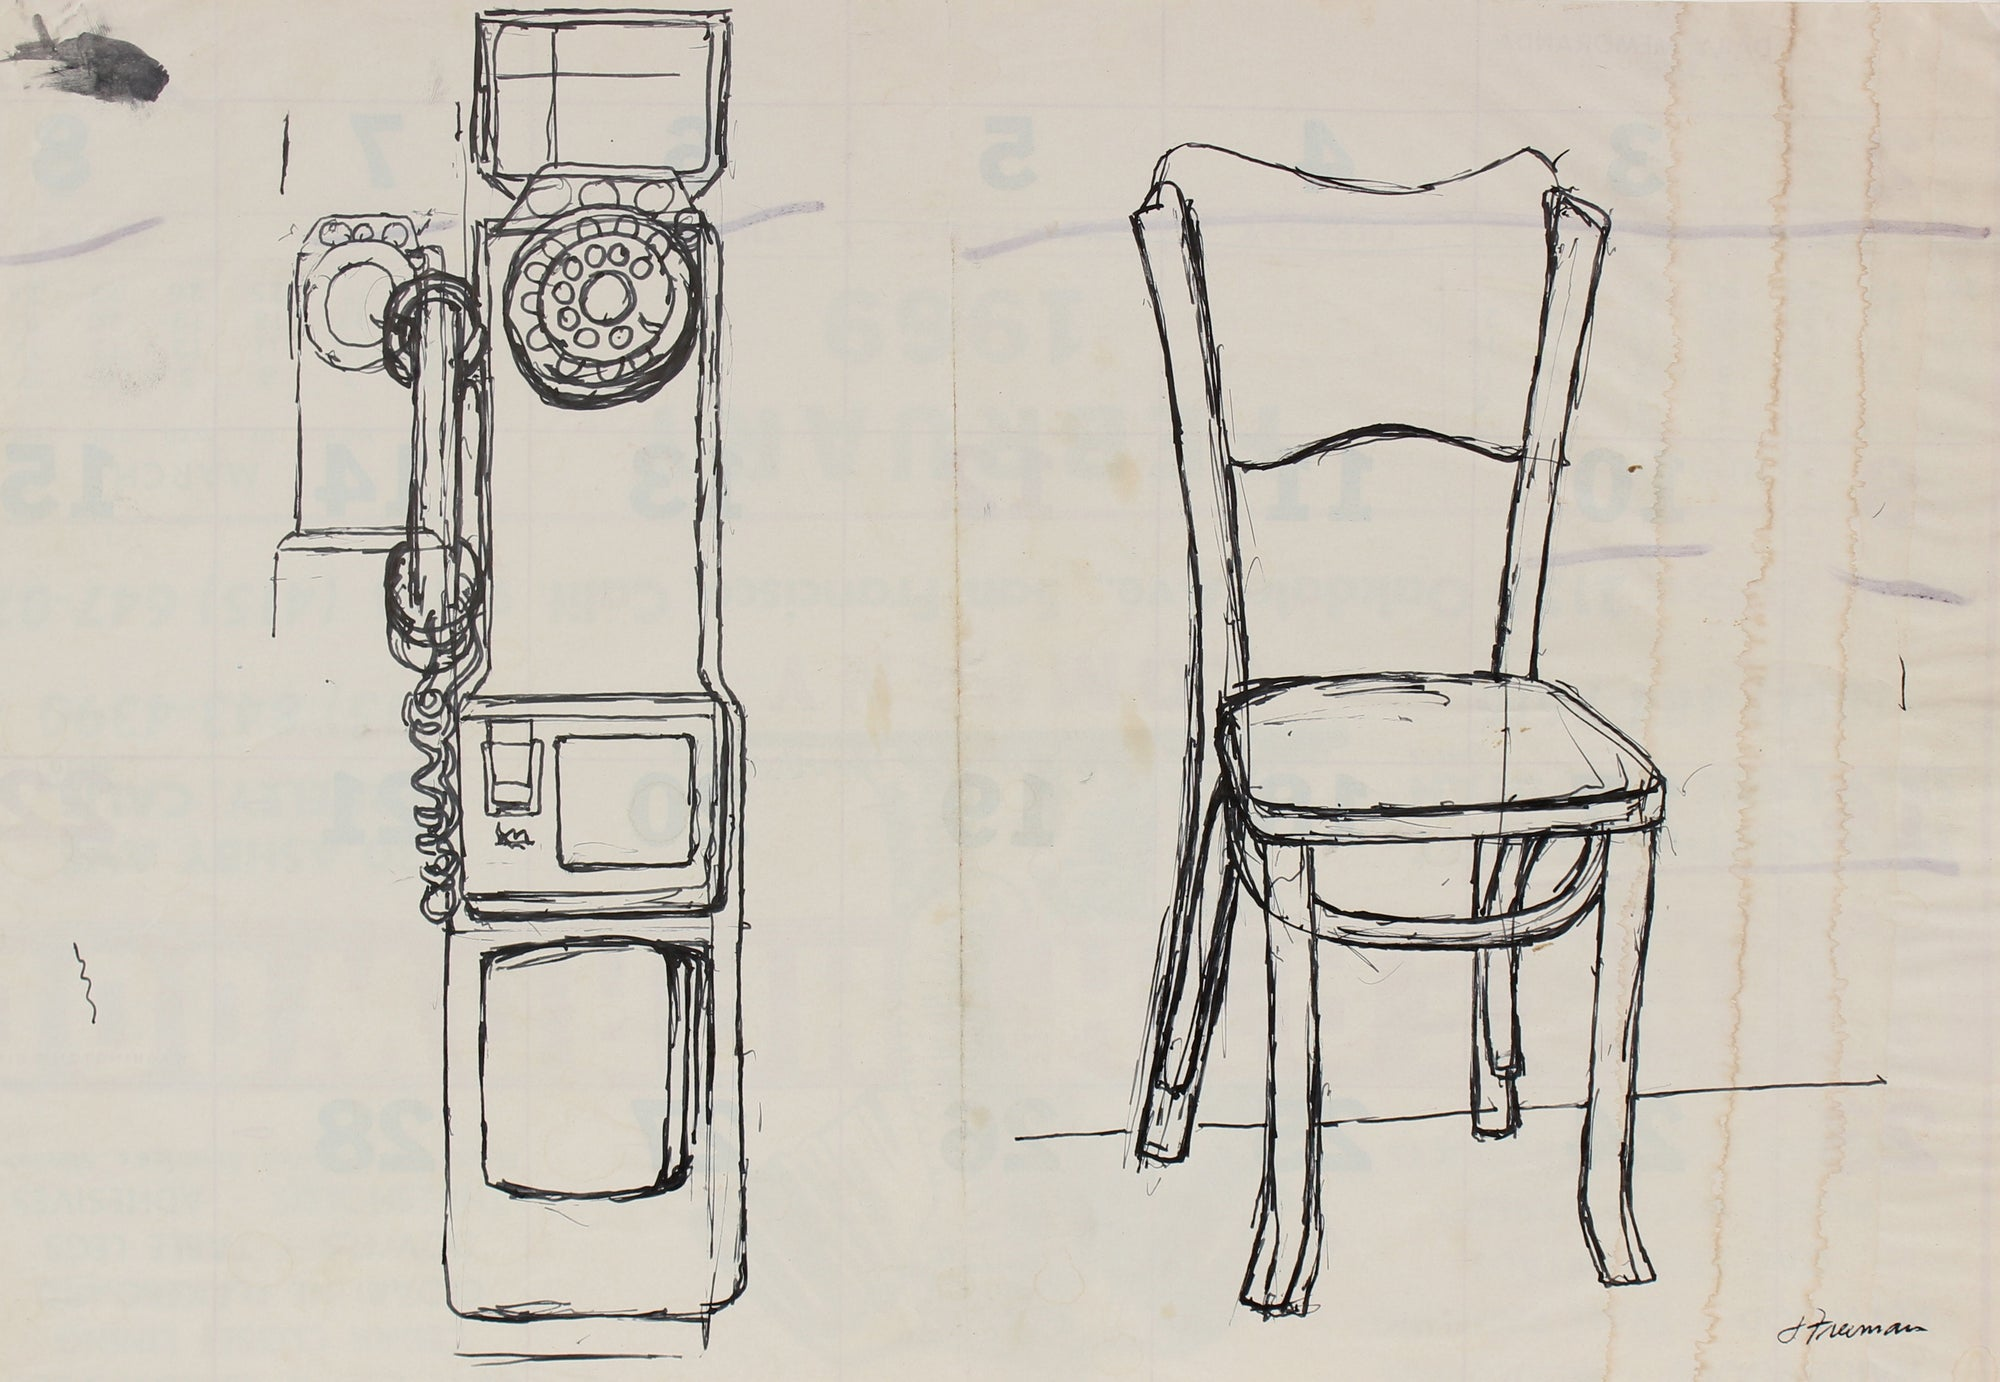 Study of Public Rotary Phone and Wooden Chair <br><br>#91440